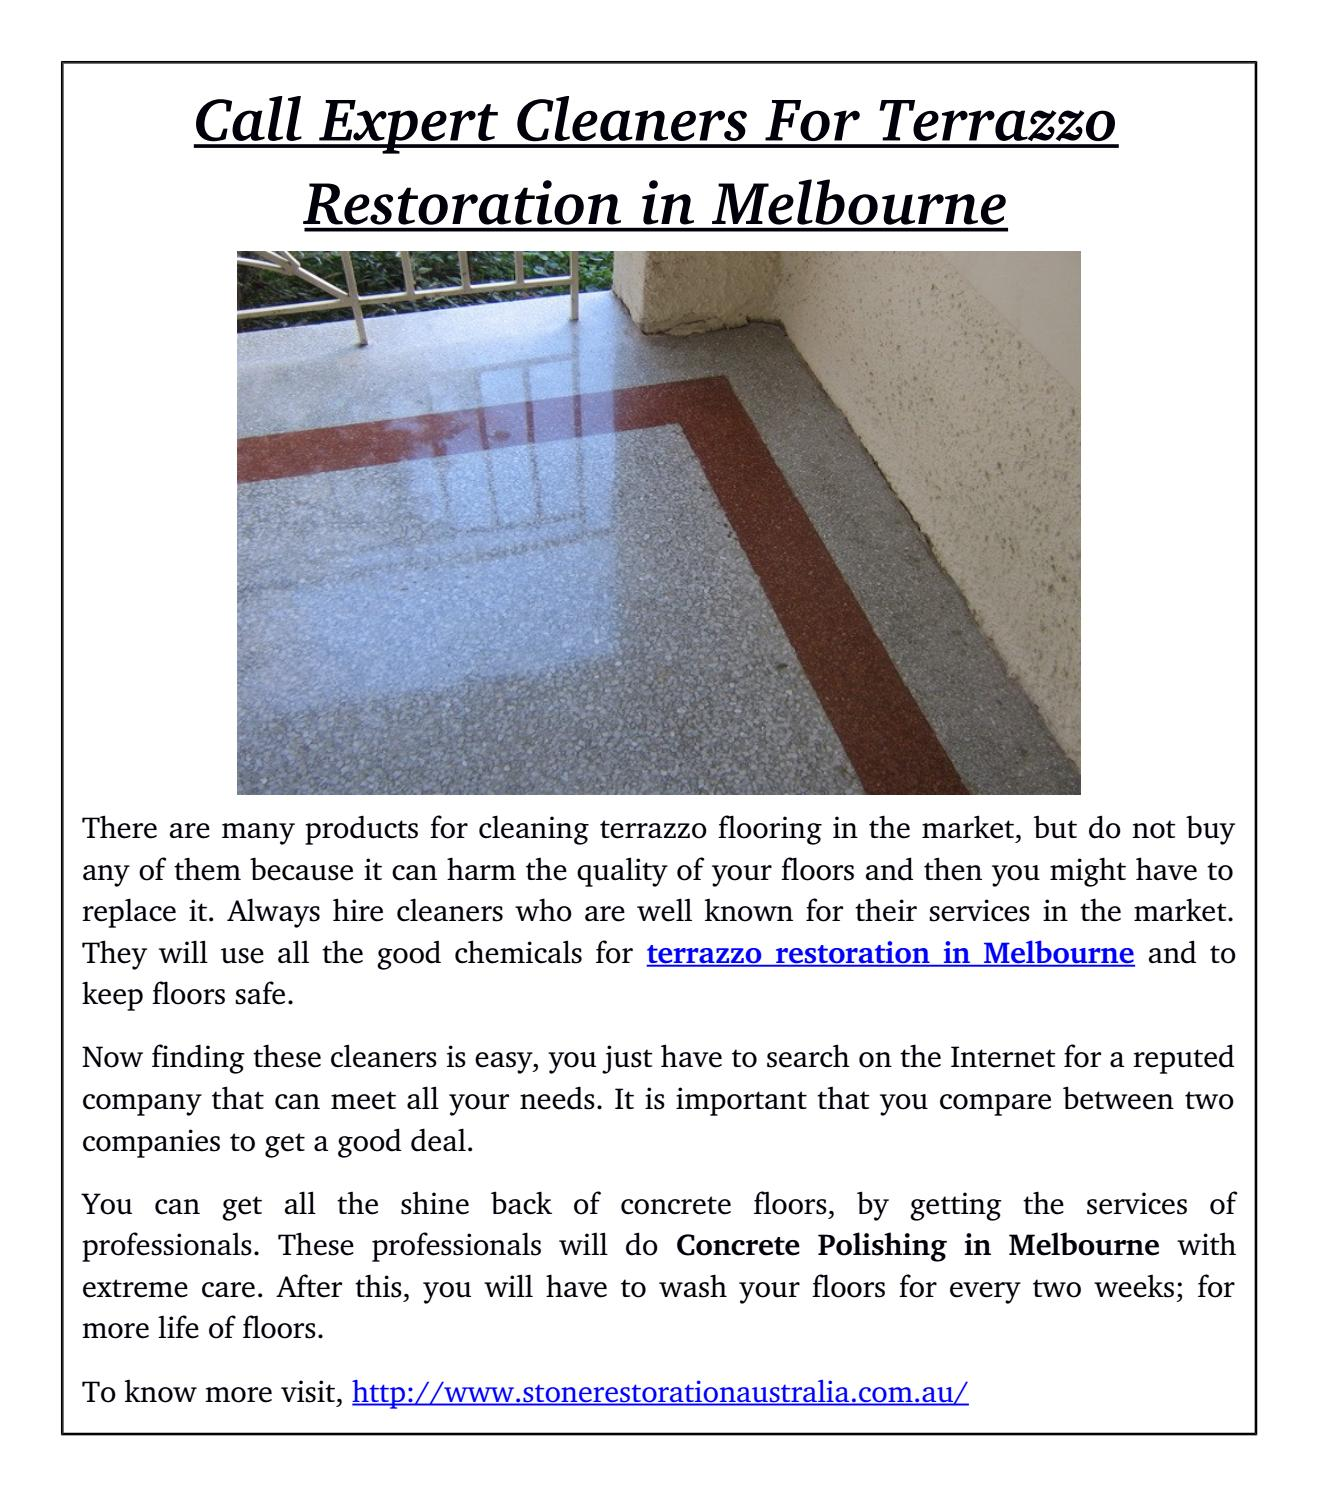 Call Expert Cleaners For Terrazzo Restoration In Melbourne